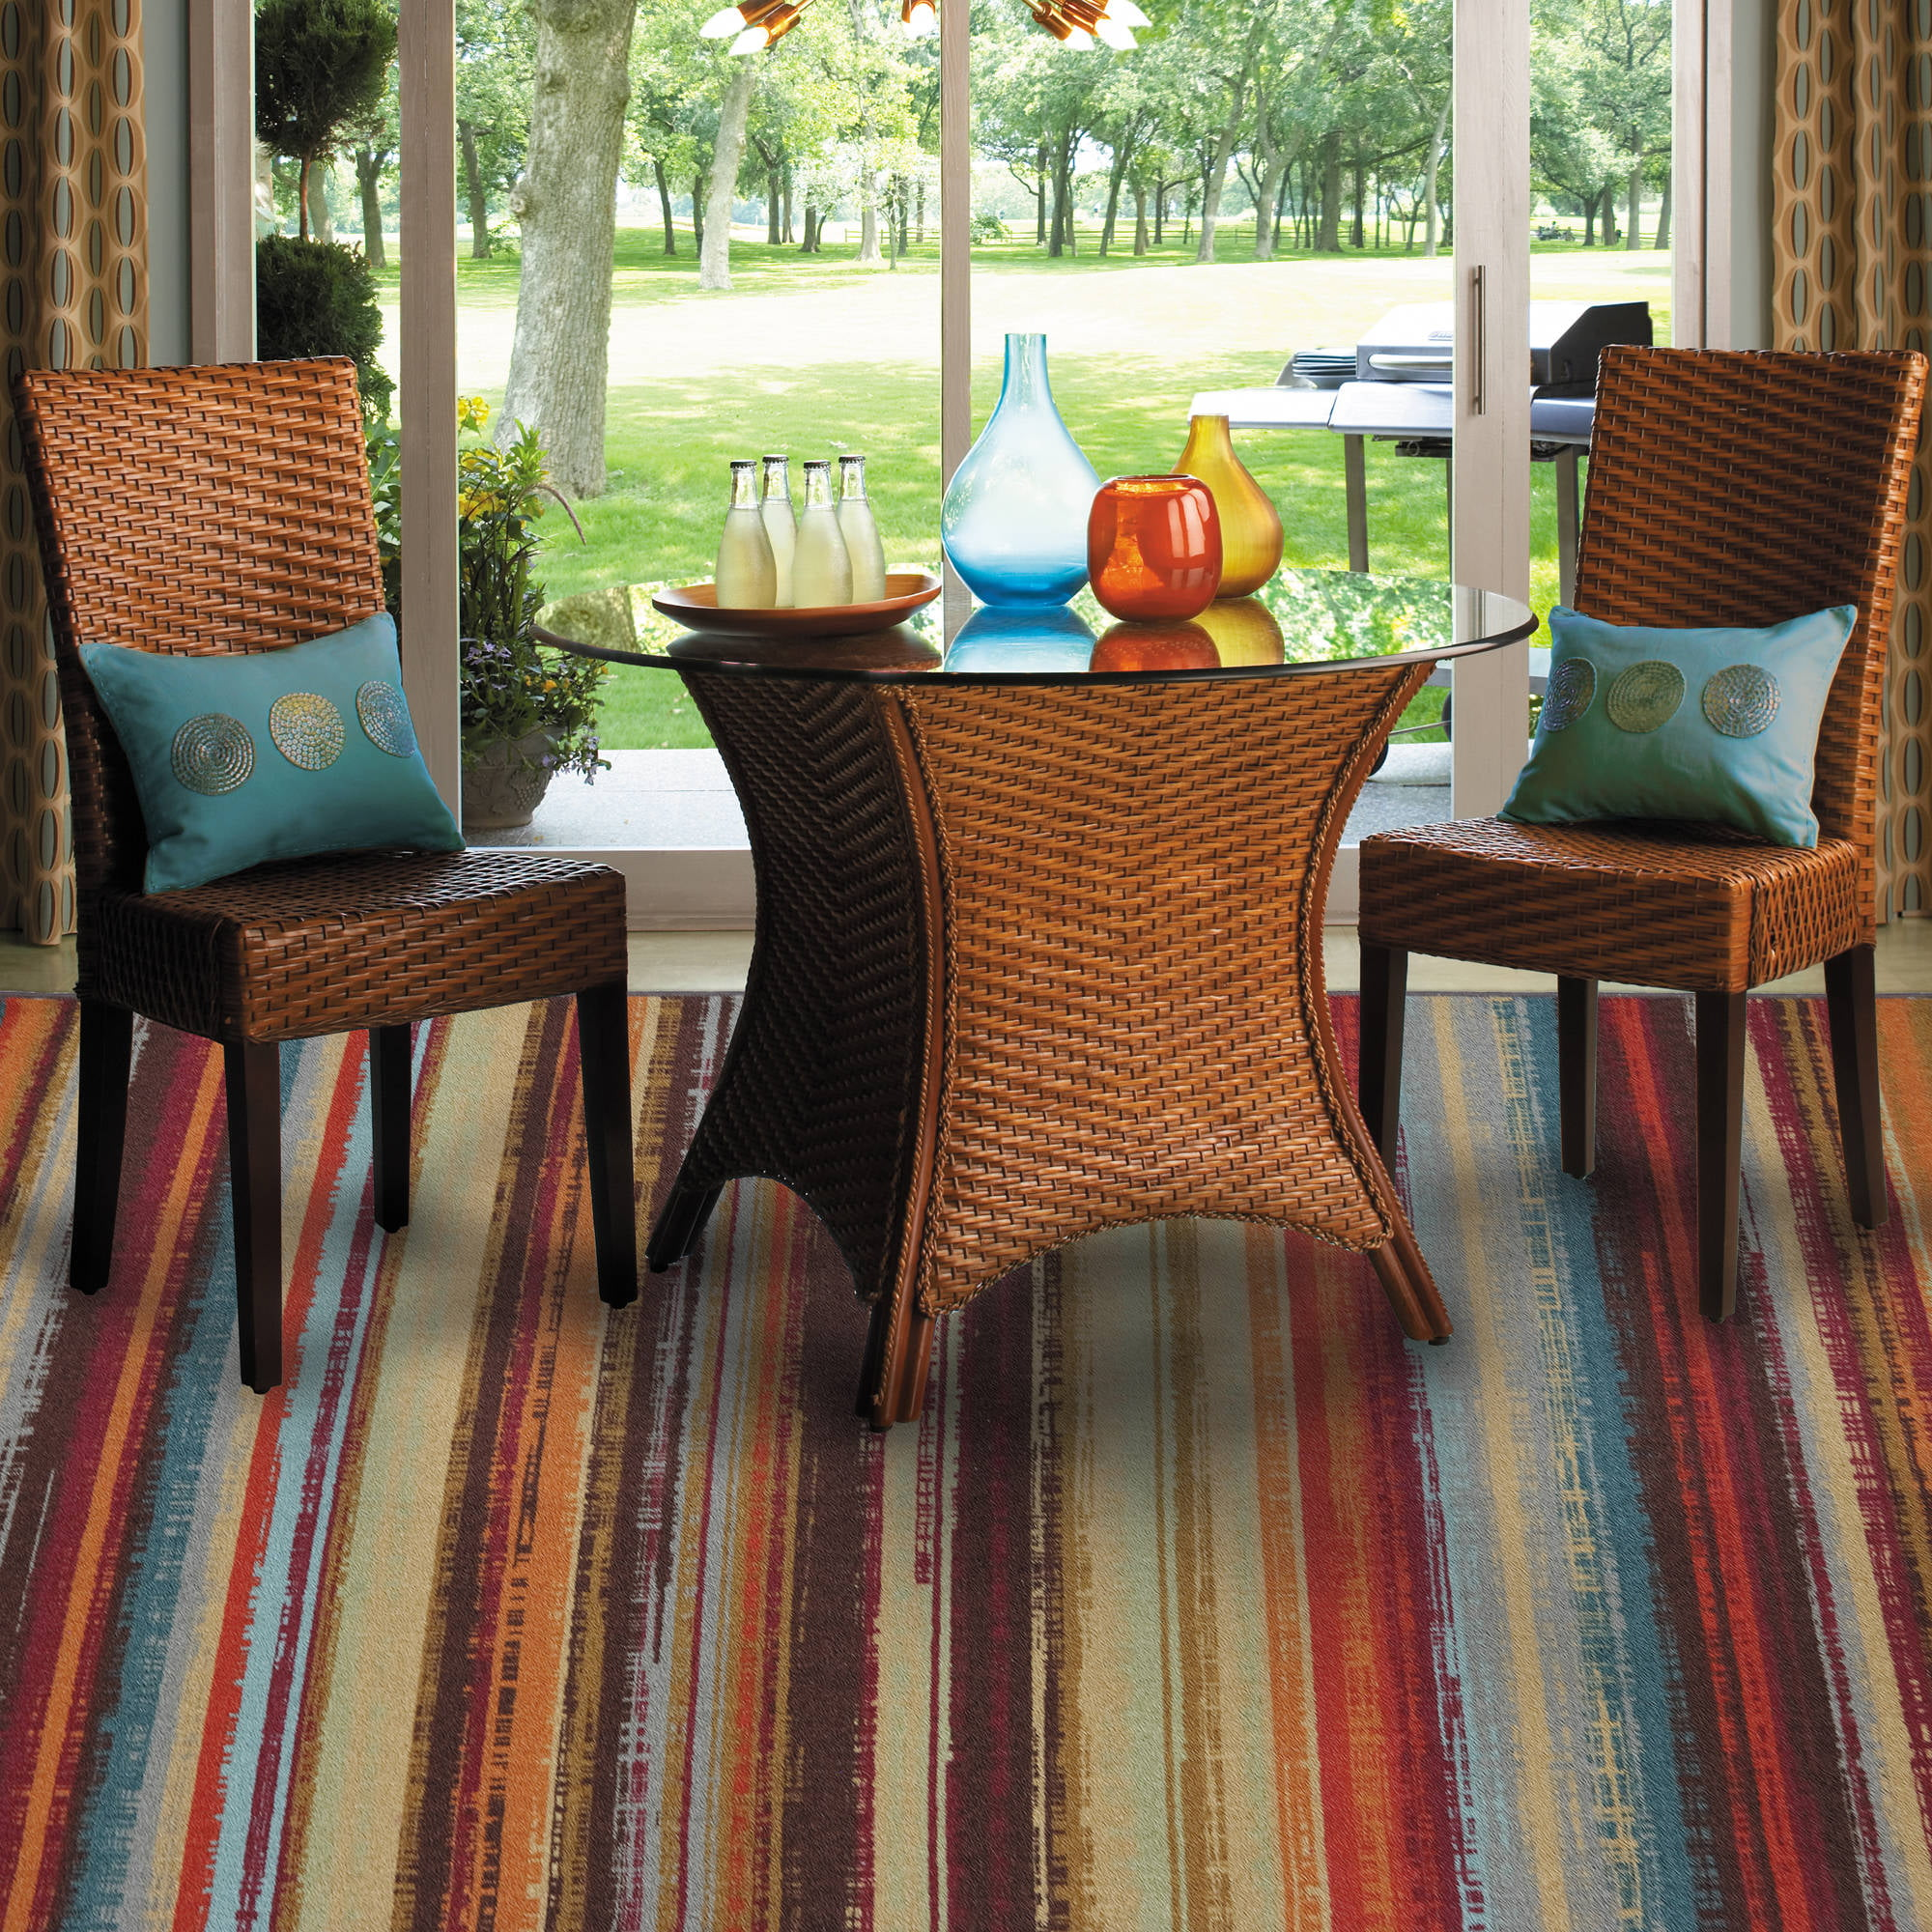 Mohawk Home Avenue Stripe Indoor/Outdoor Nylon Rug, Multi-Colored ...